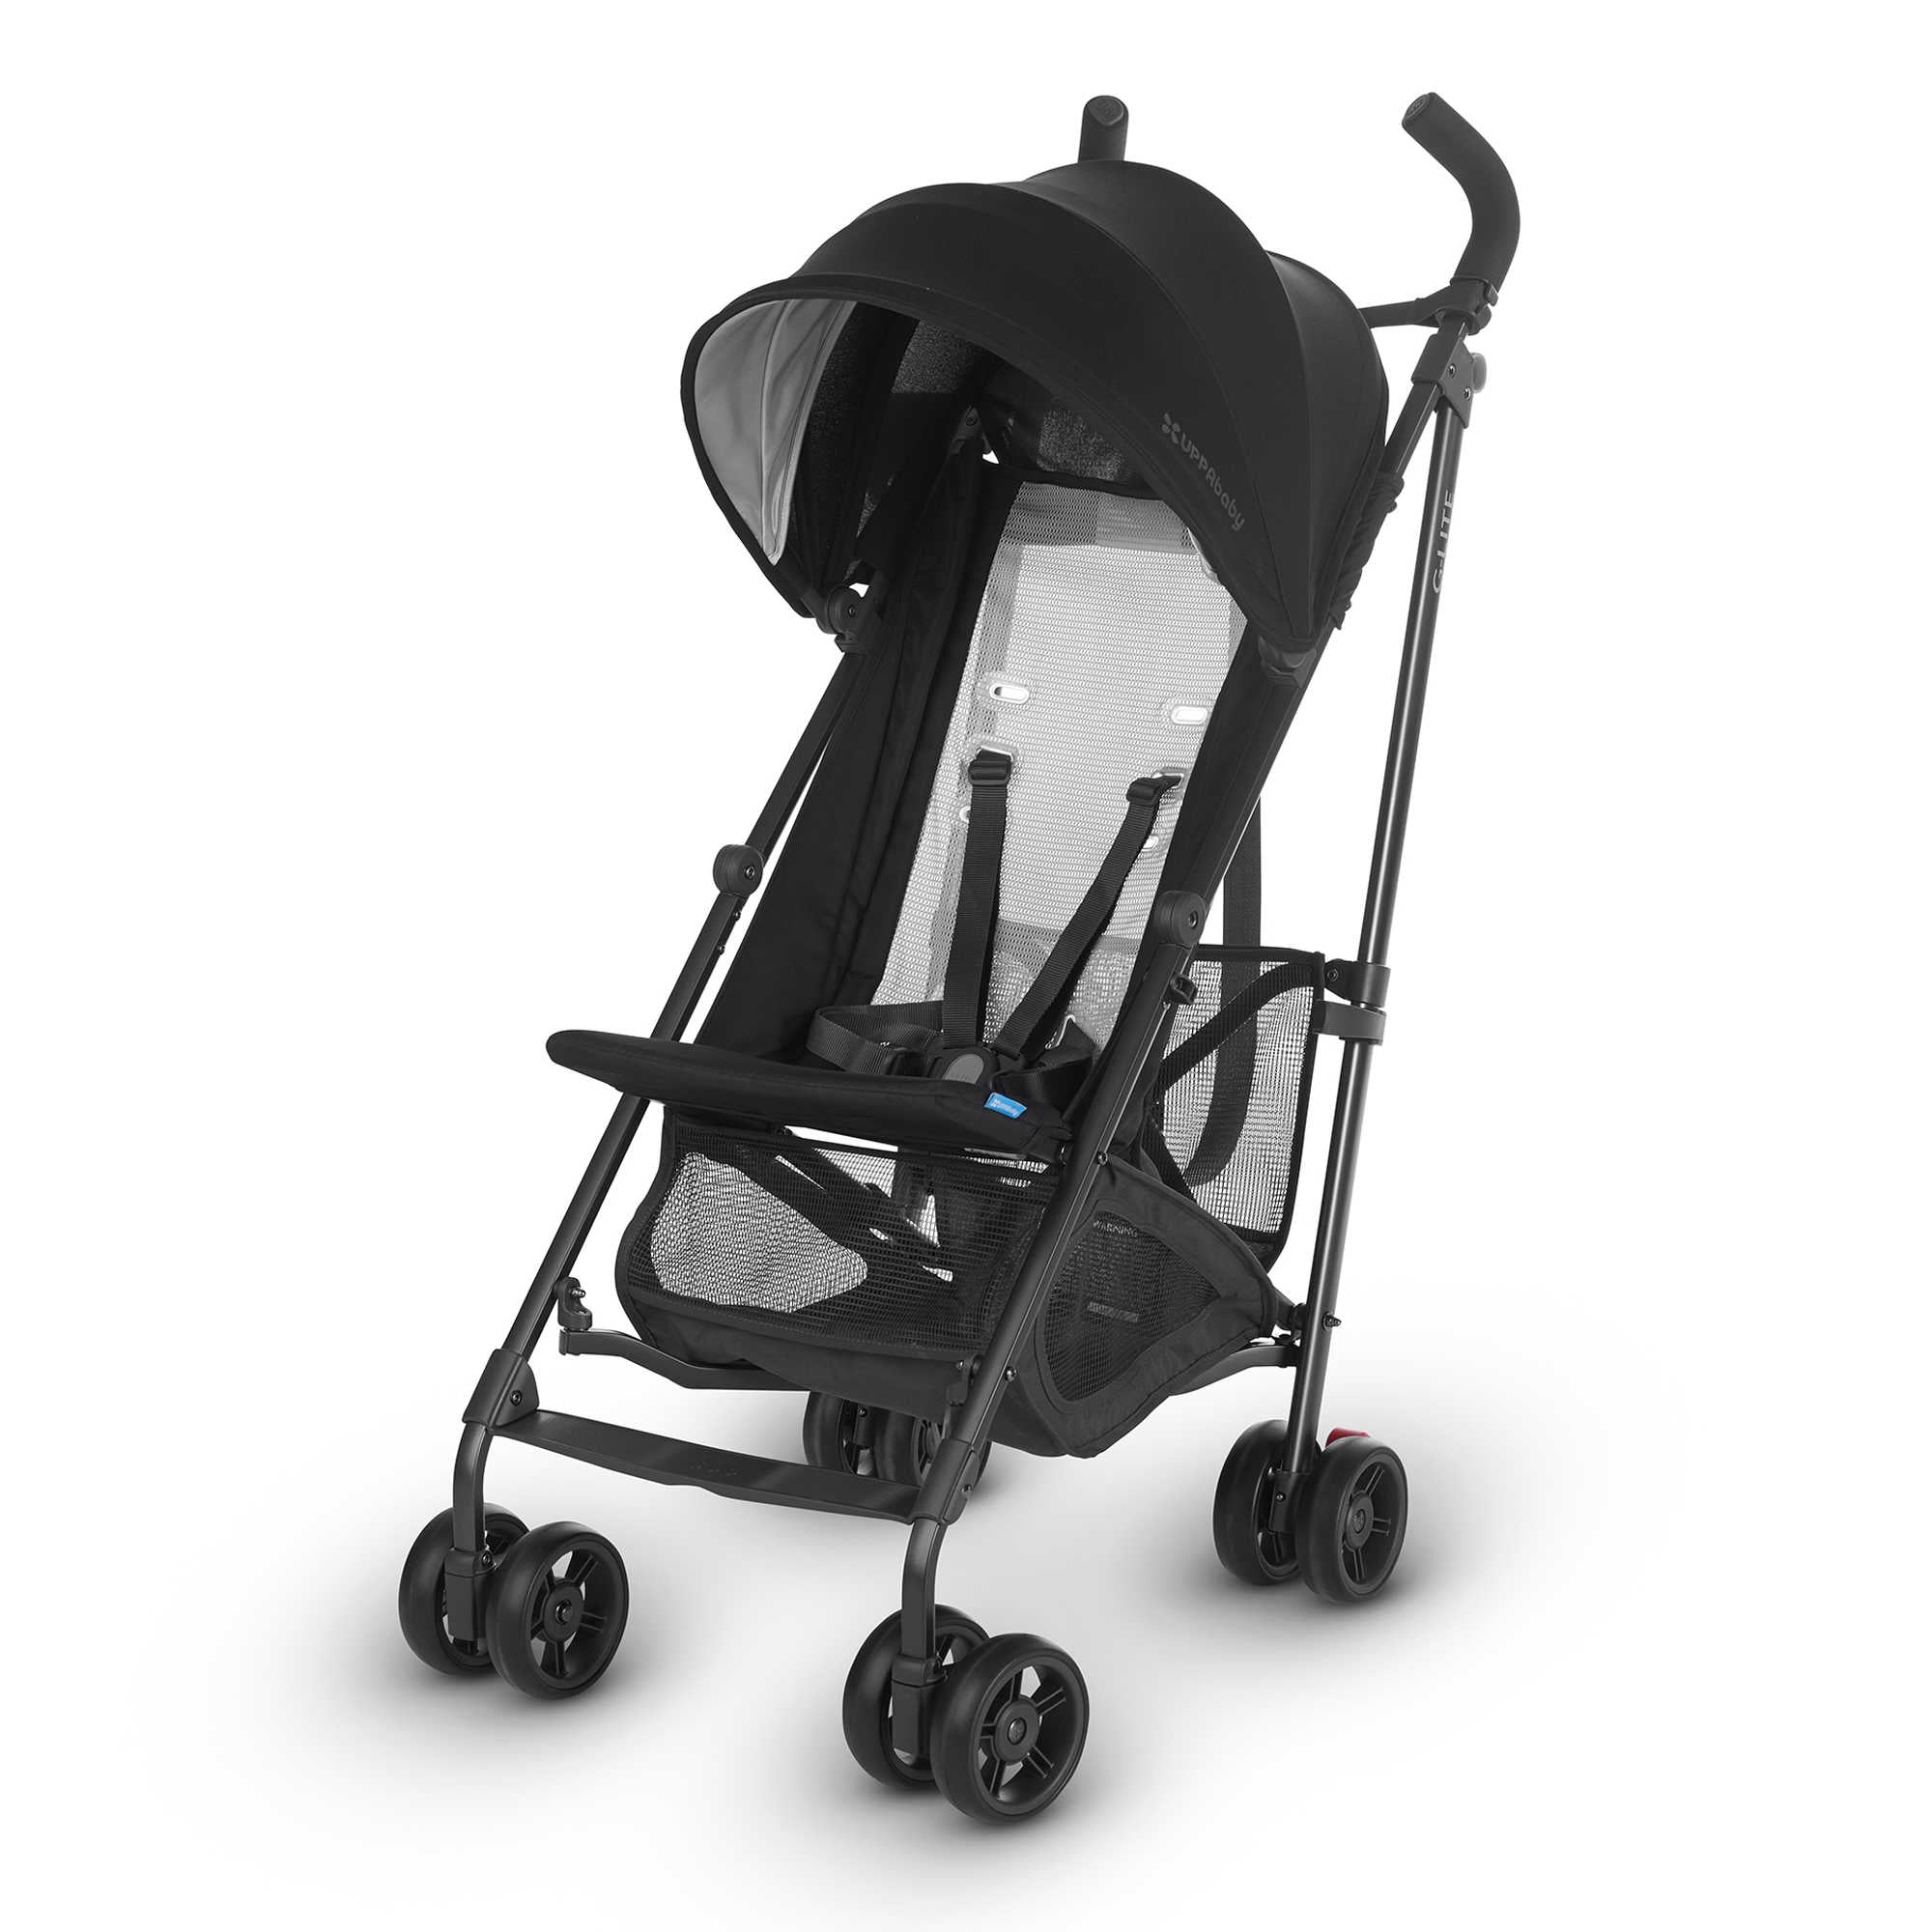 ac1a299c45aa7 UPPAbaby G-LITE 2018 Umbrella Stroller - Little Folks NYC